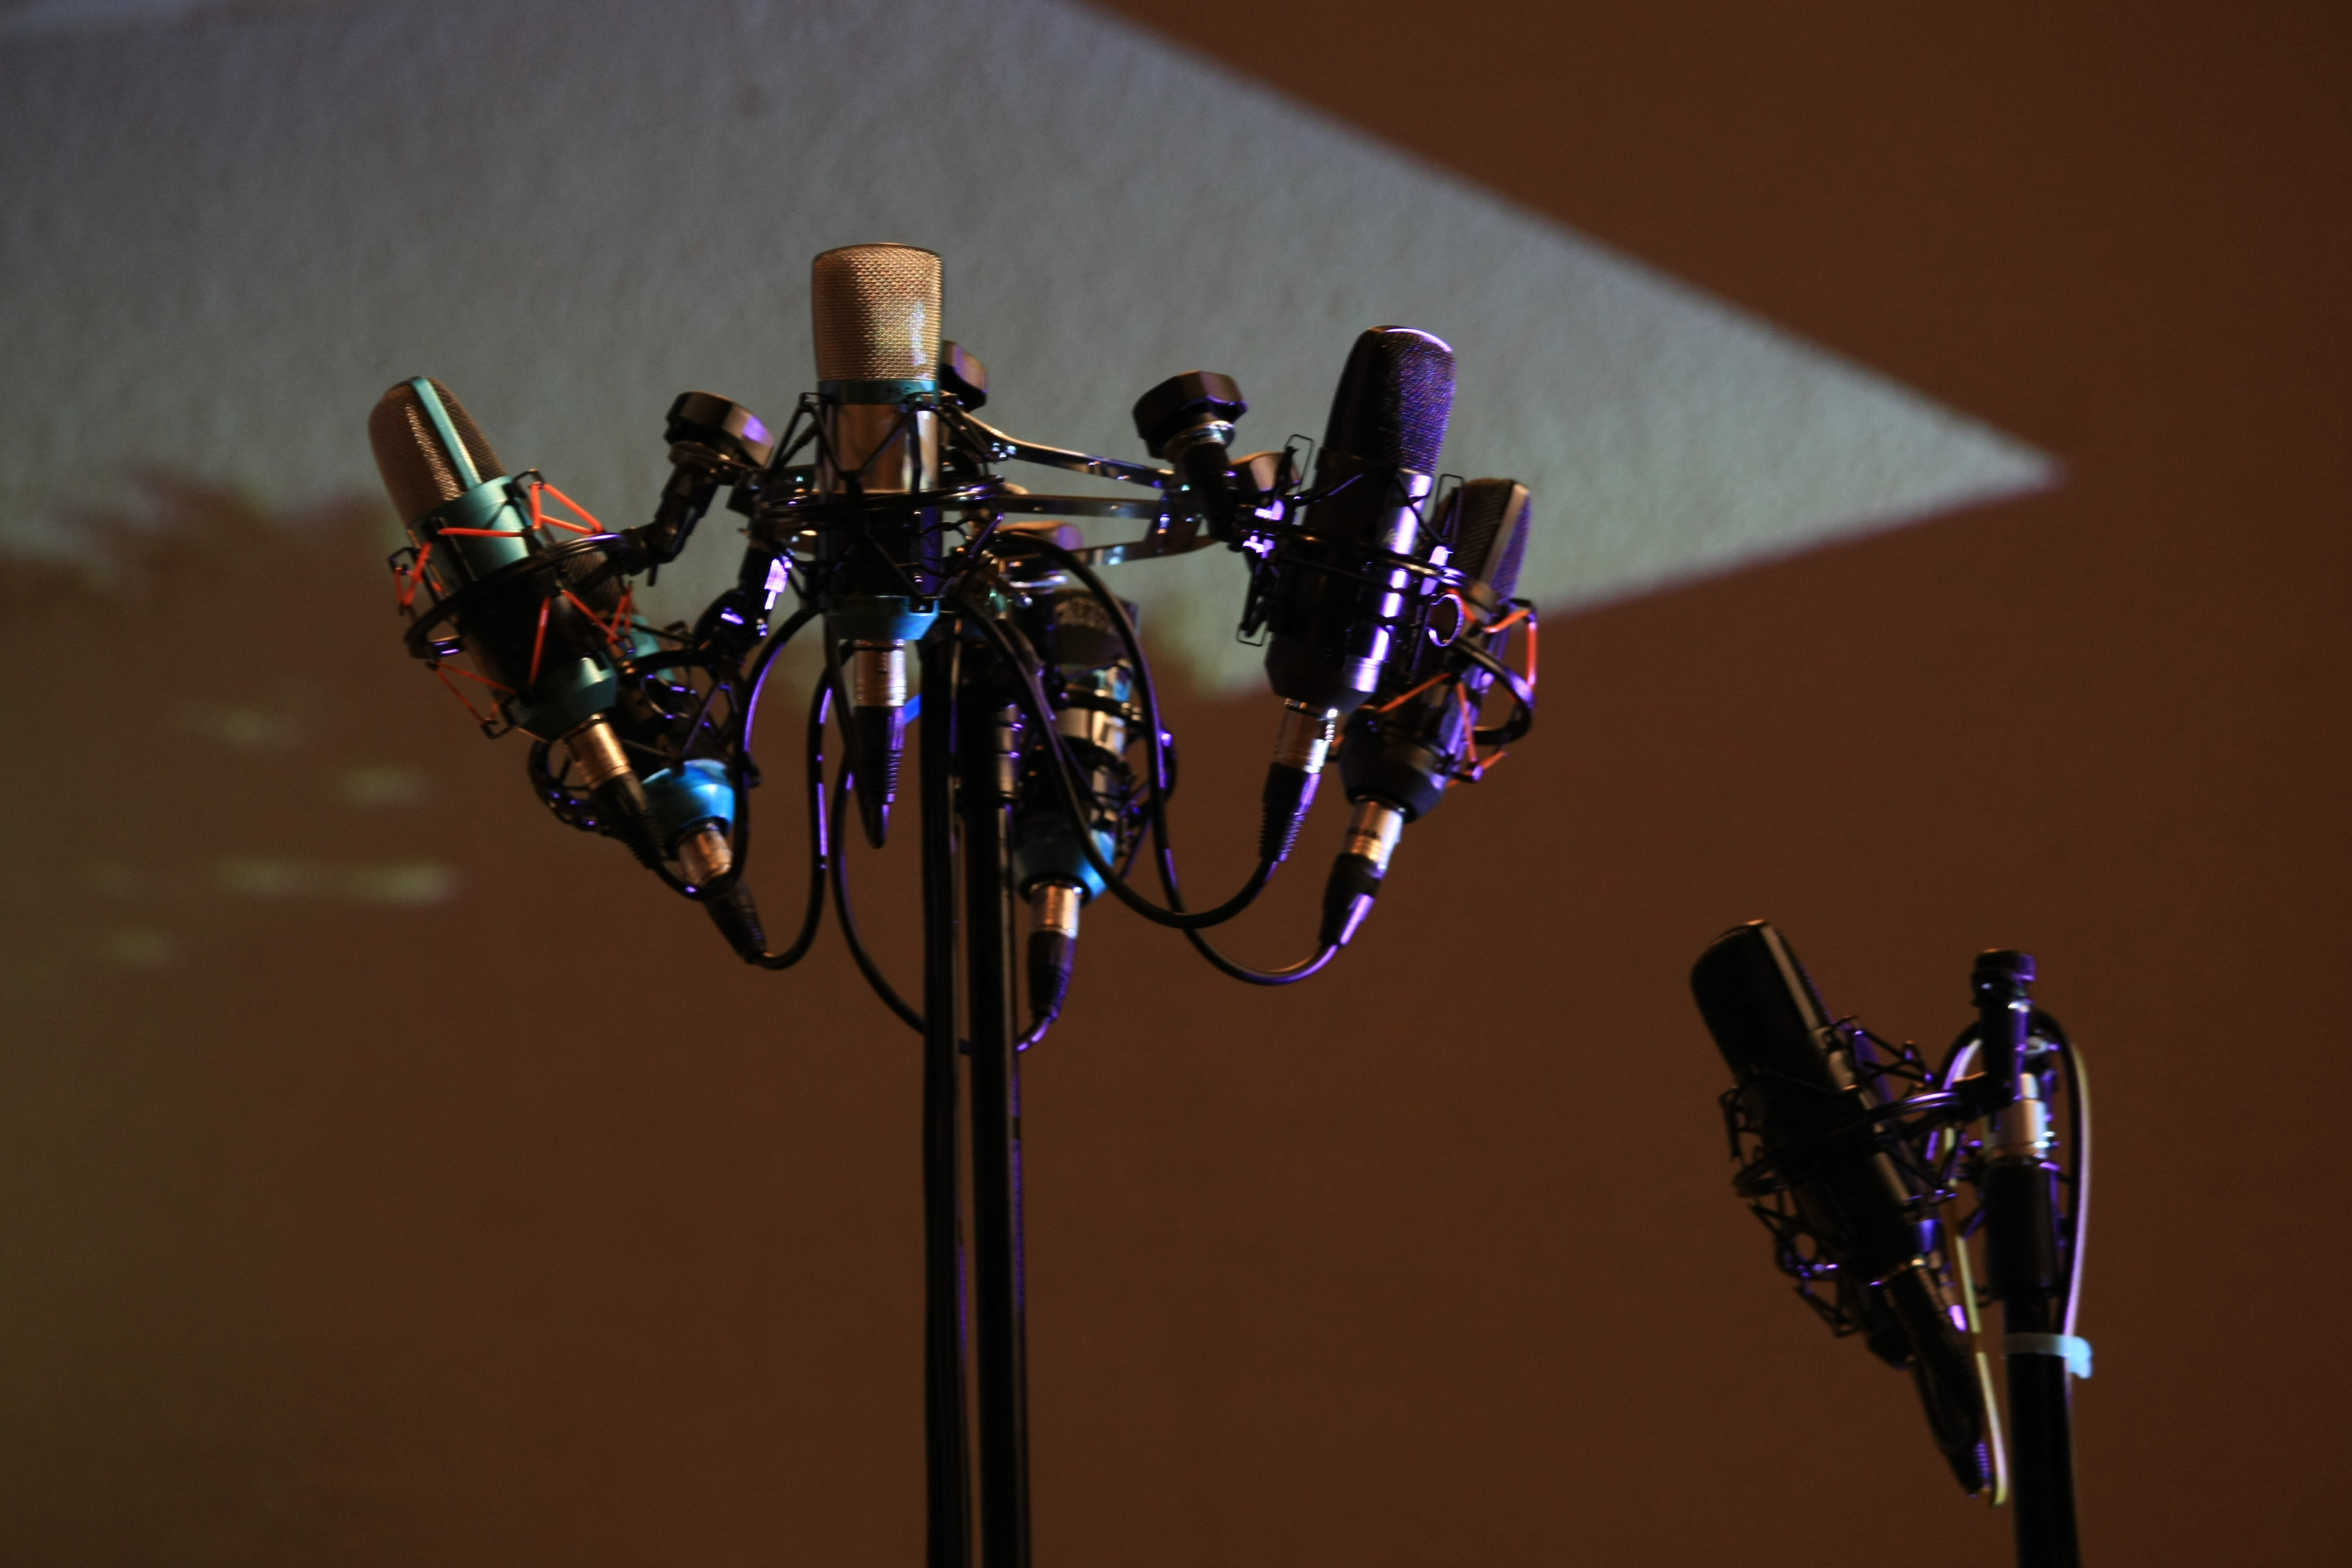 Recording and reproduction are technologies that are familiar with music.